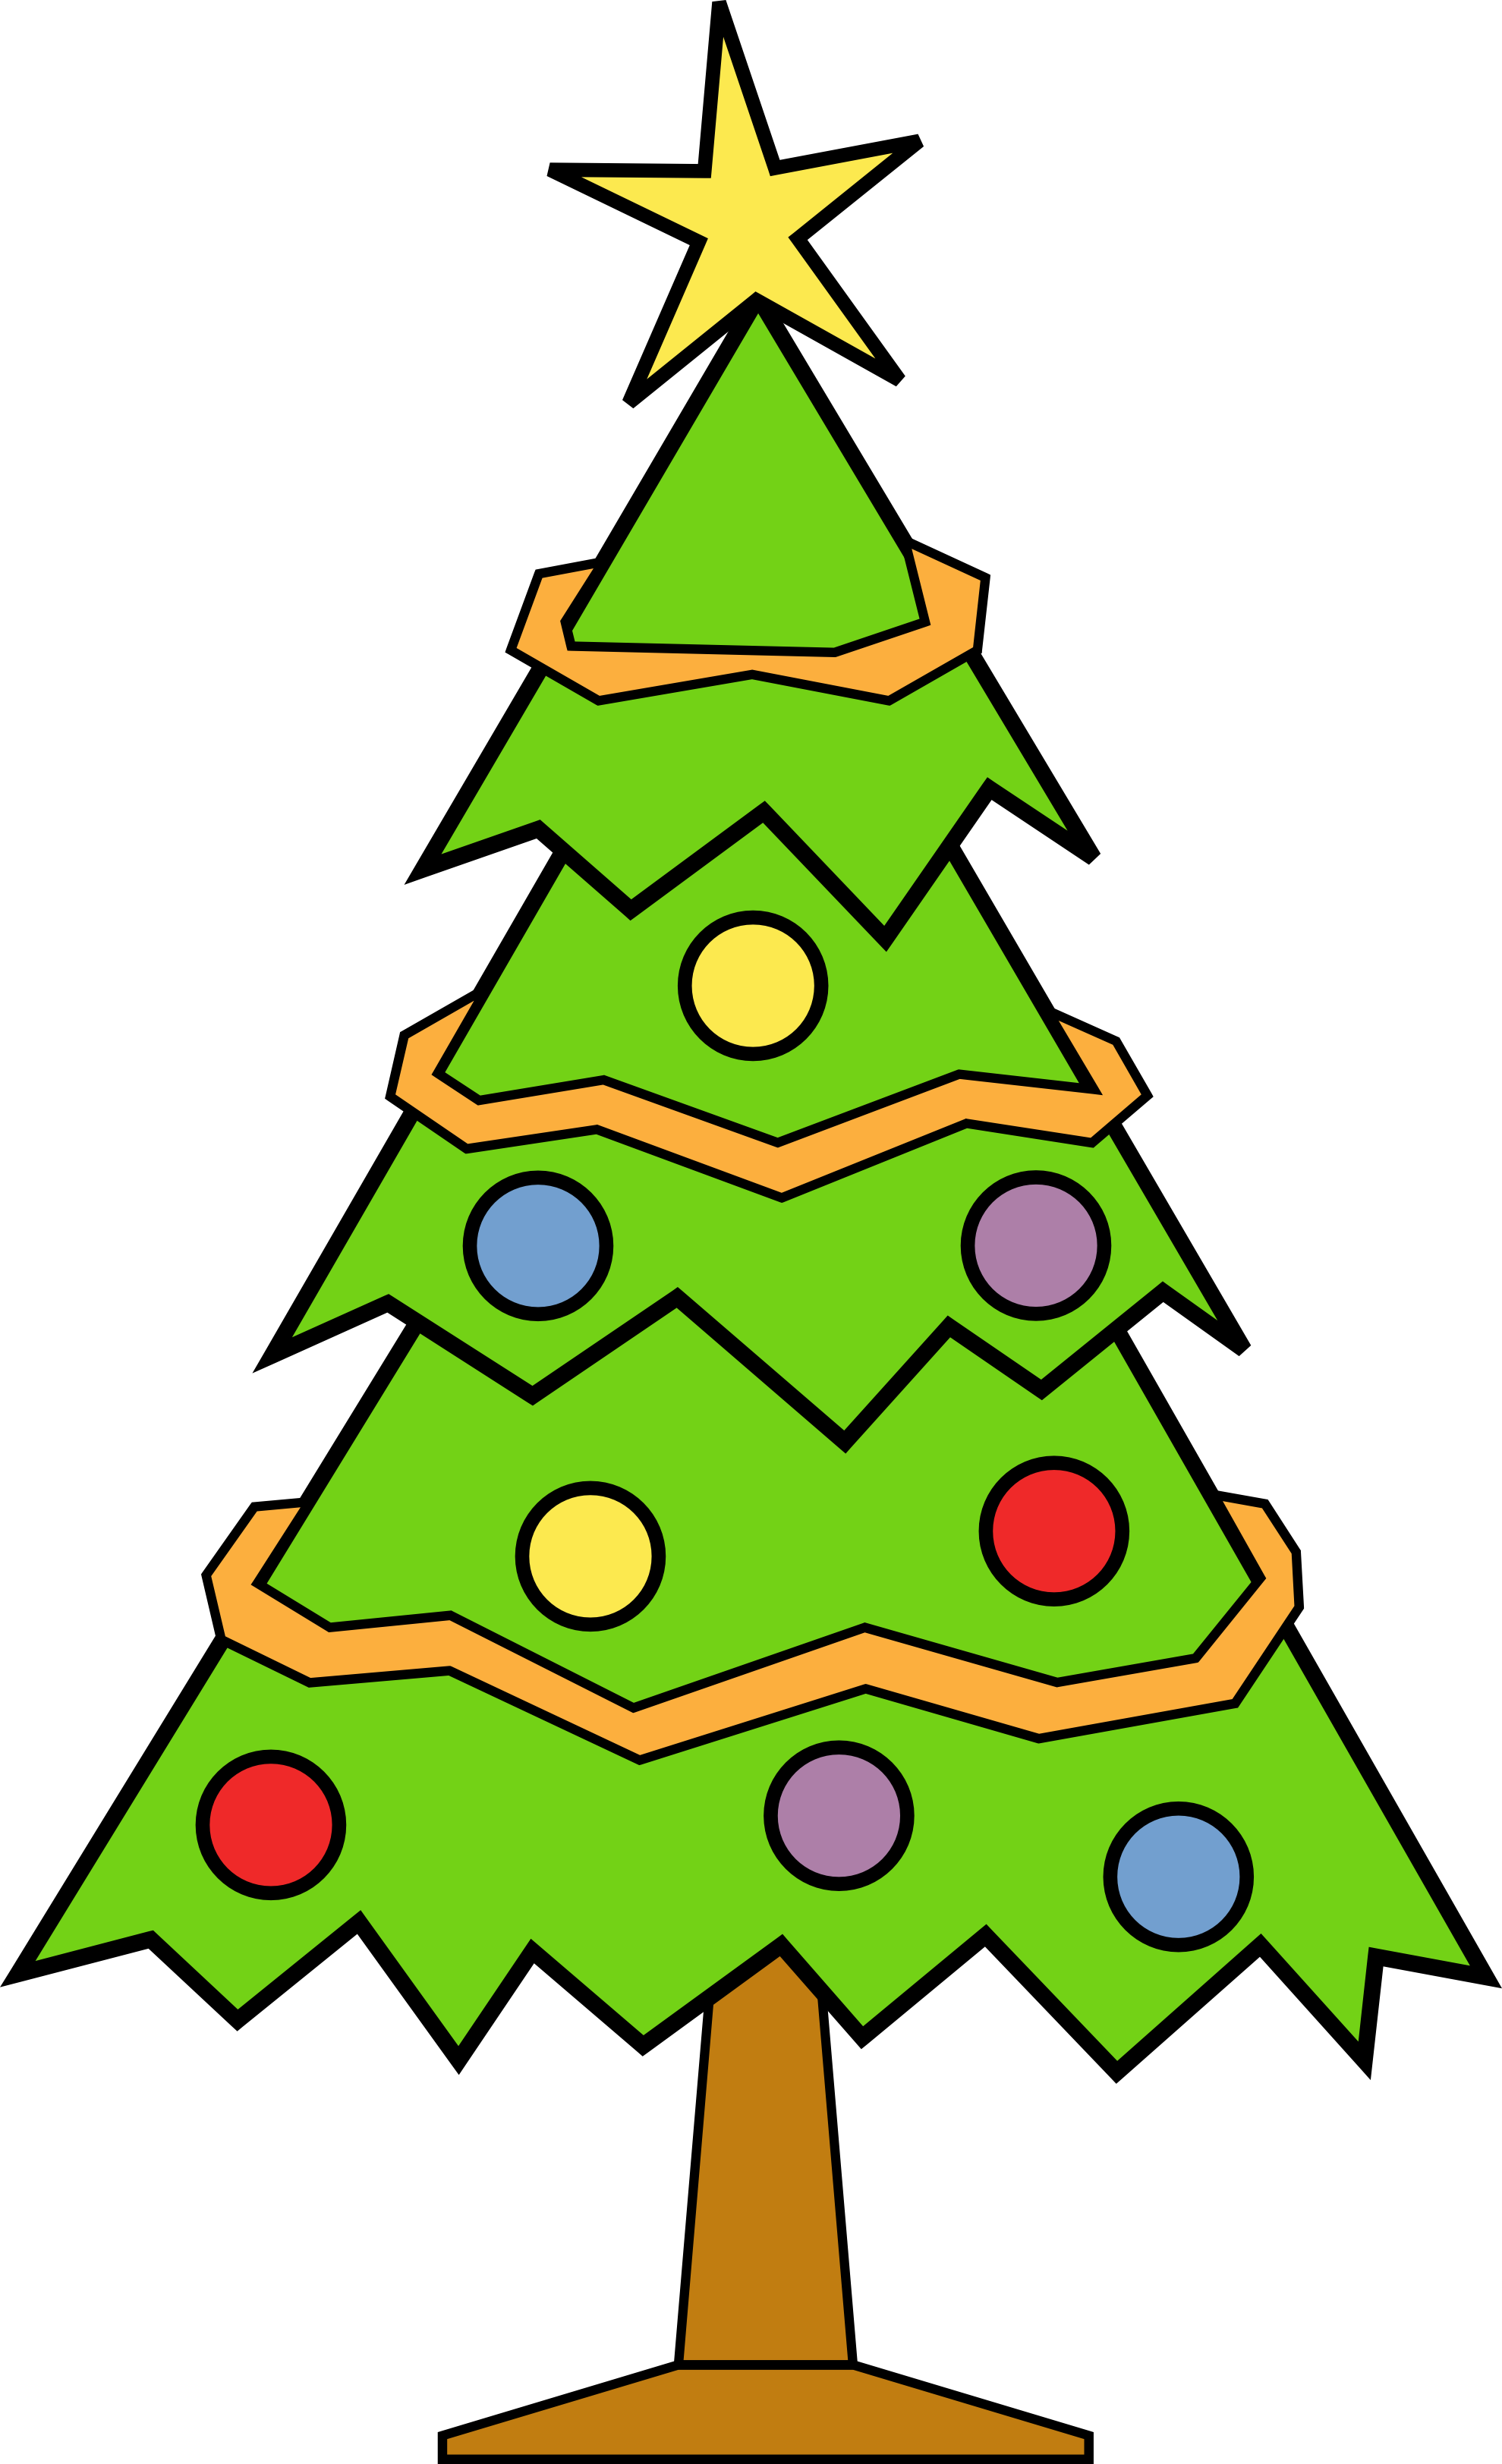 Whoville tree clipart jpg free library Whoville Clipart   Free download best Whoville Clipart on ... jpg free library